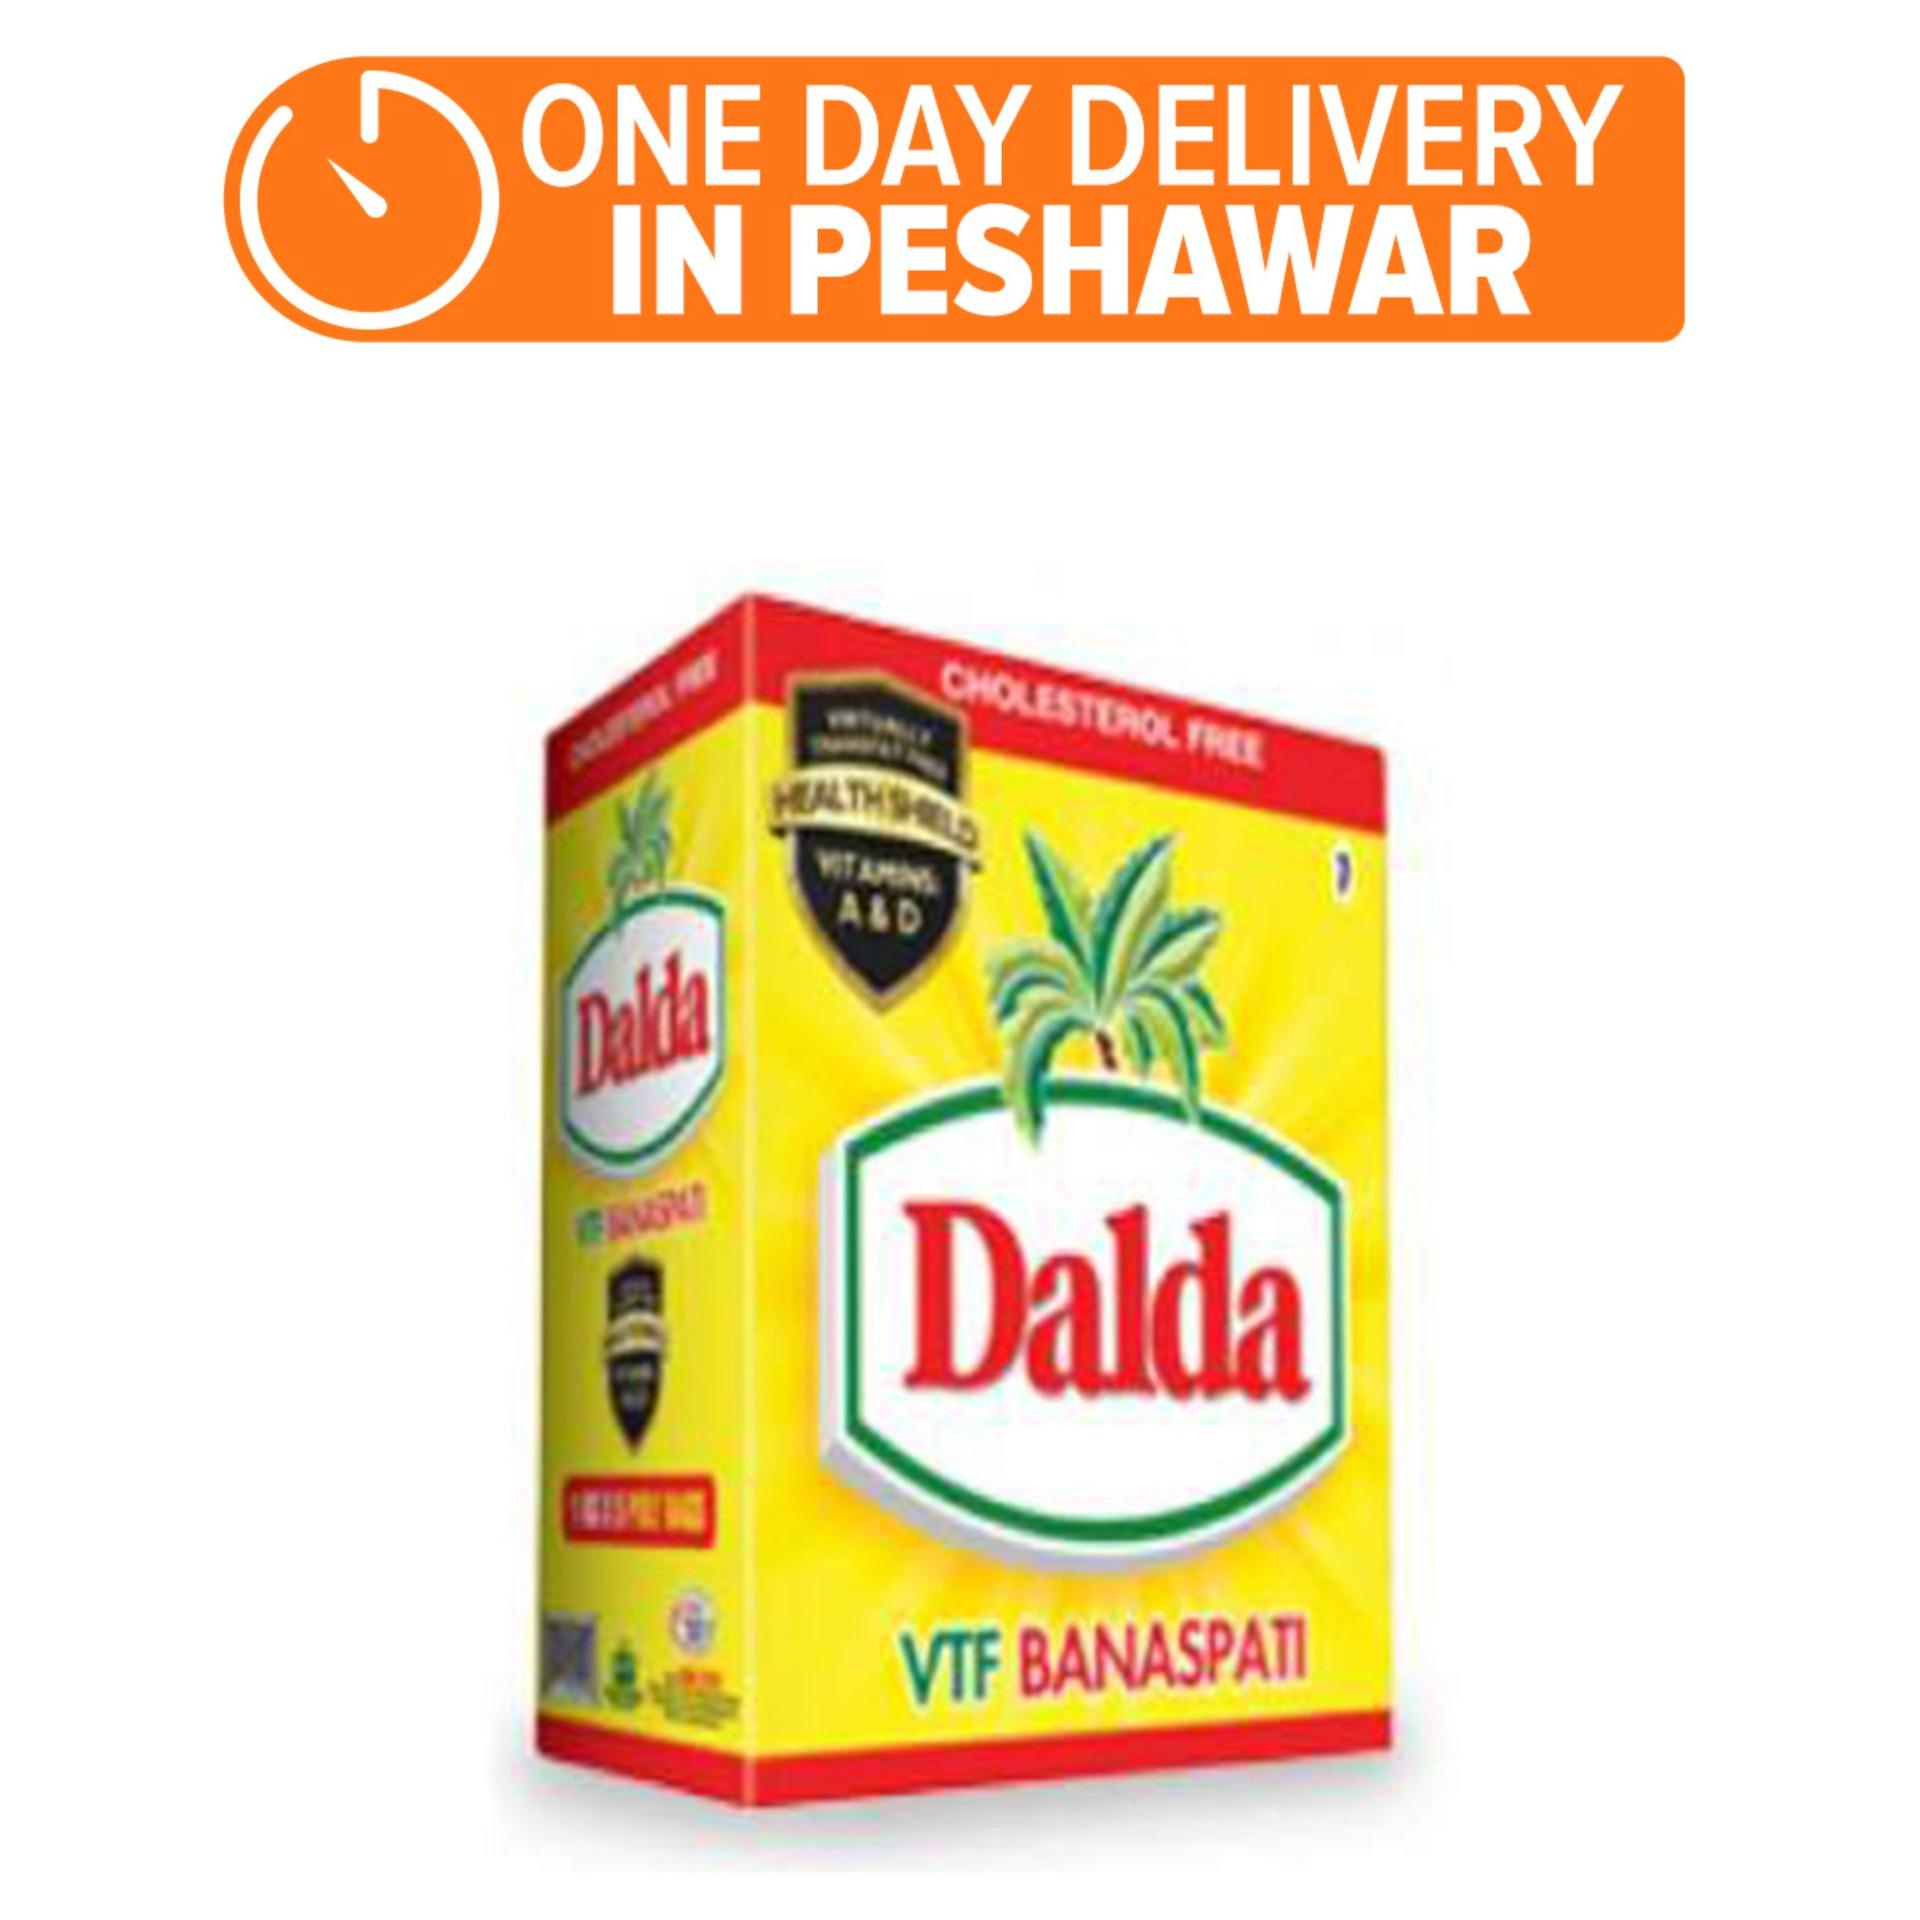 Dalda Banaspati Ghee (Pack of 5)(One day delivery in Peshawar)